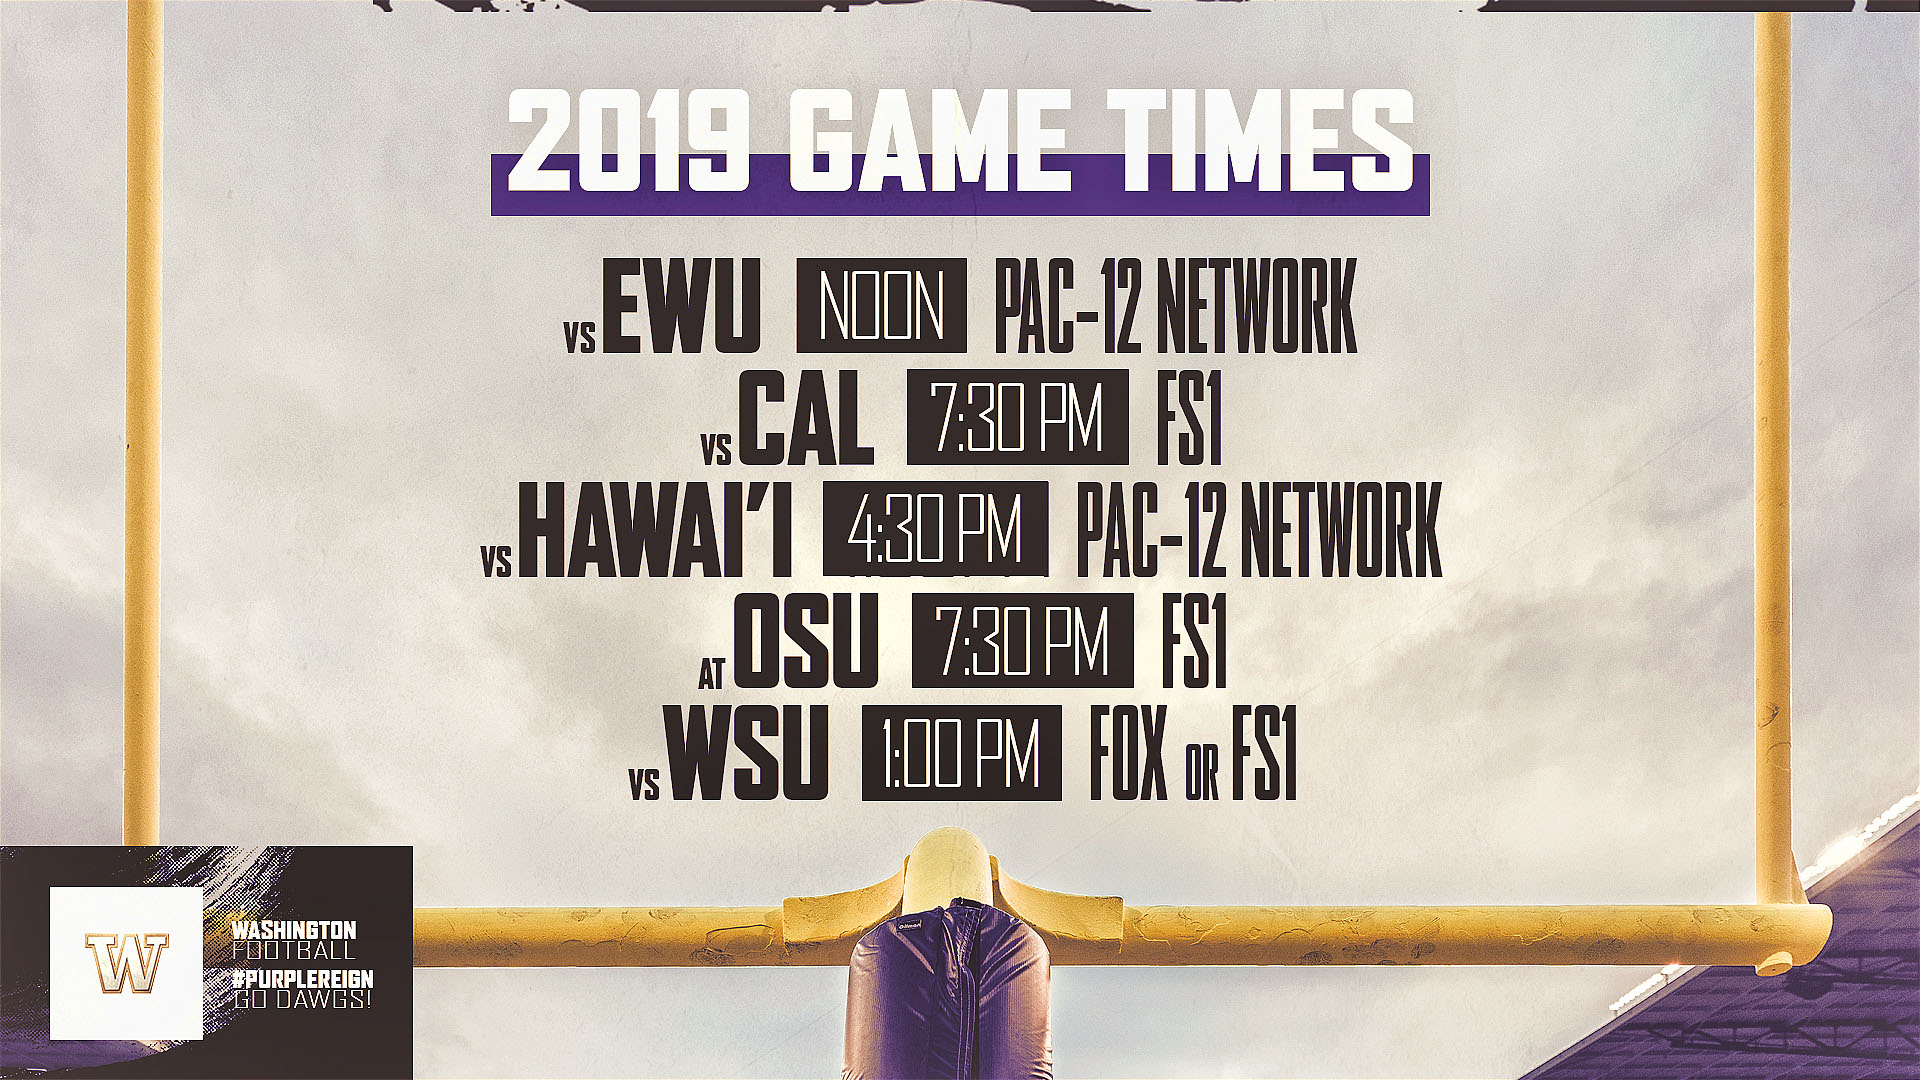 Washington Husky Football Schedule 2019 Times And TV Announced For Five UW Football Games   University of